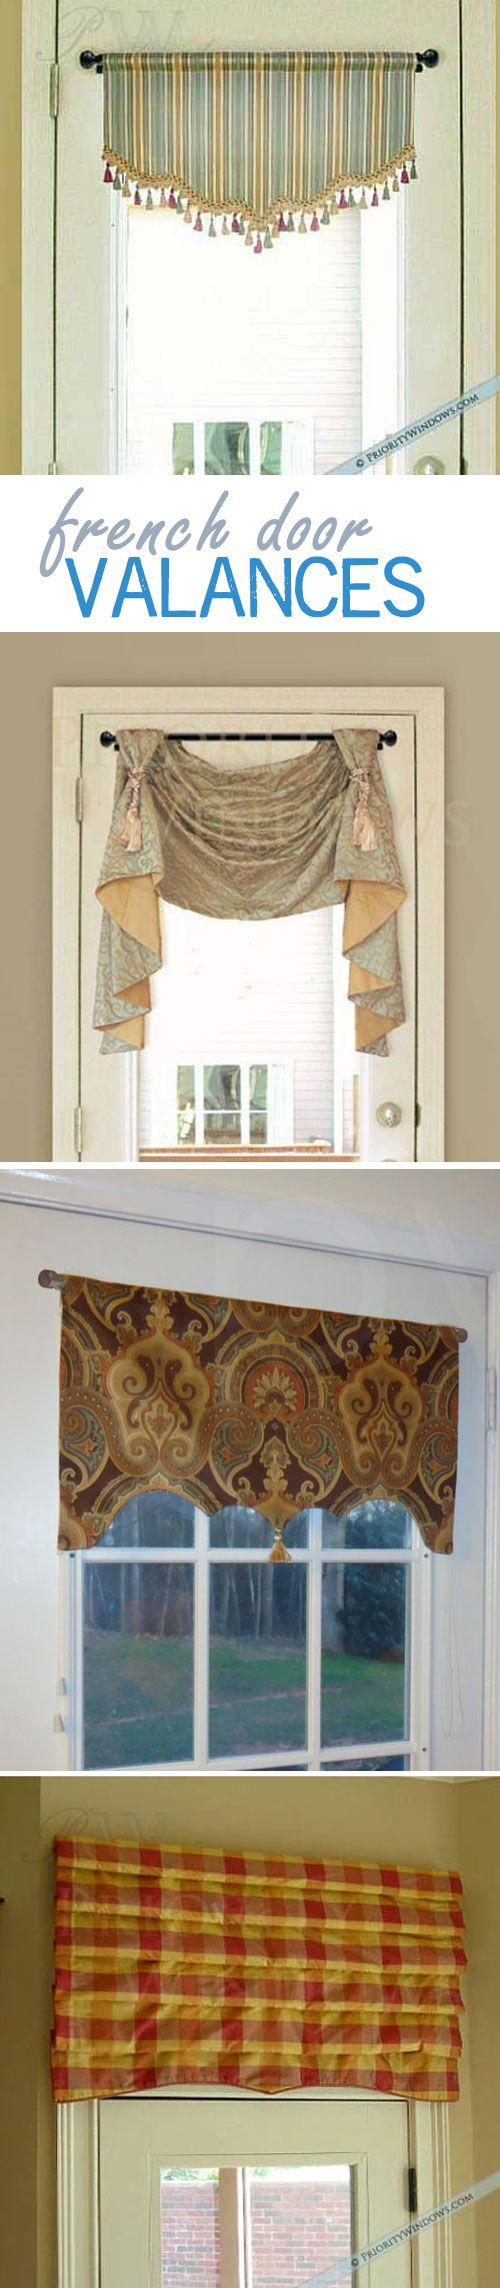 Valances For French Doors Patio Doors Custom Custom Patio Doors Blinds For French Doors French Doors Patio